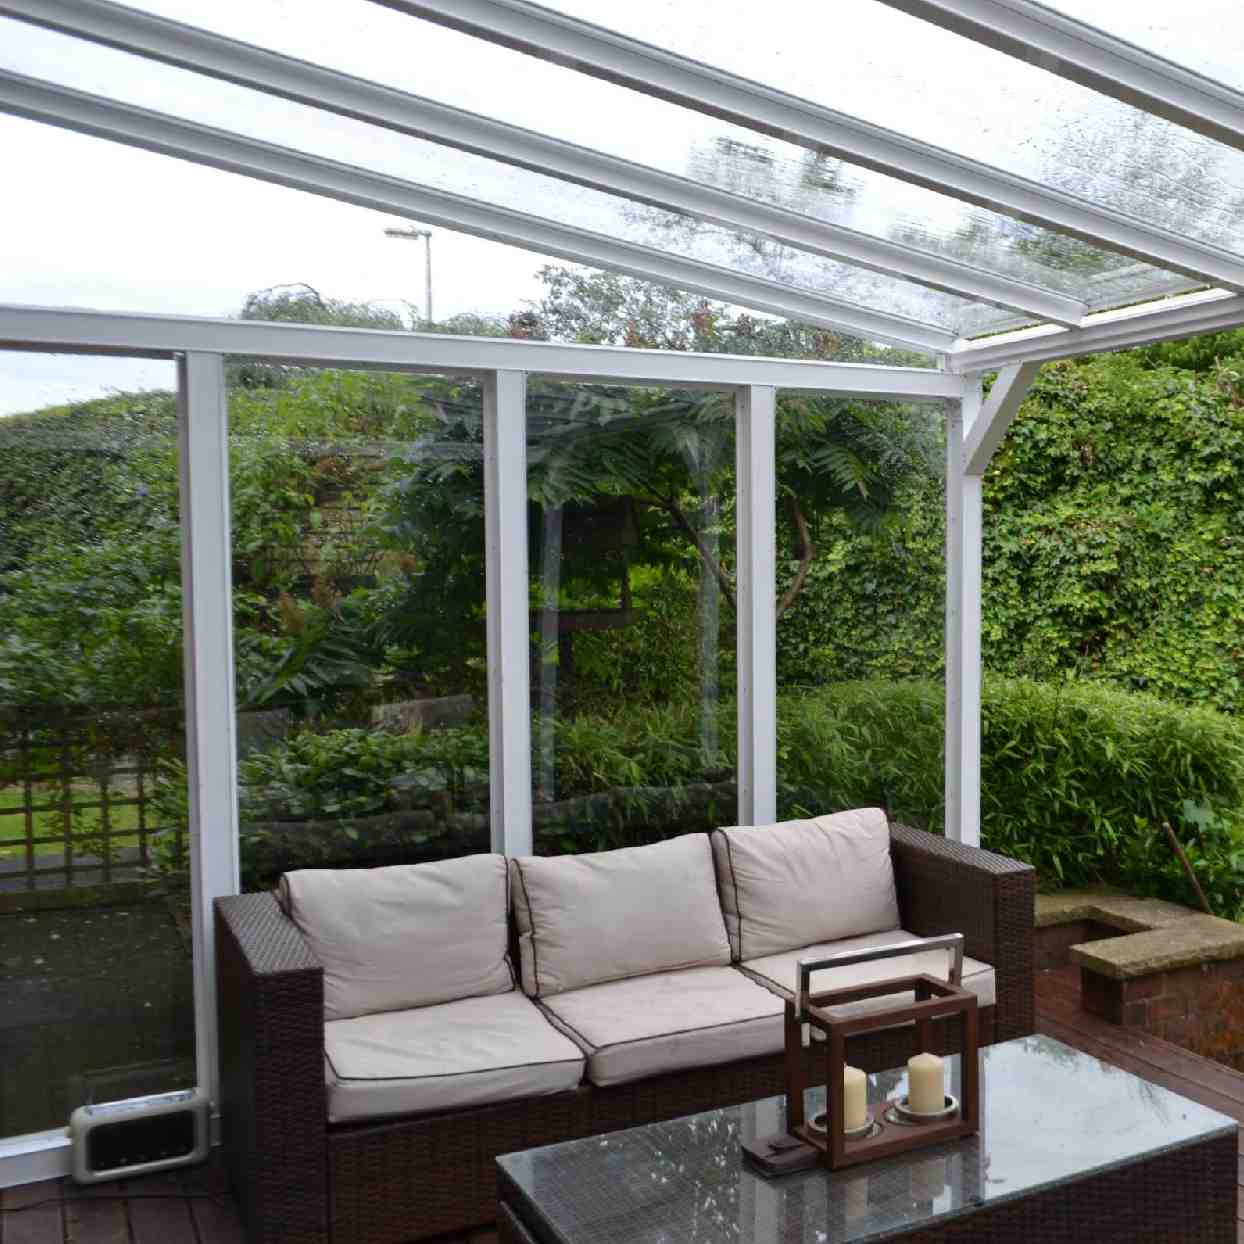 Buy Omega Verandah with 16mm Polycarbonate Glazing - 11.2m (W) x 4.5m (P), (5) Supporting Posts online today